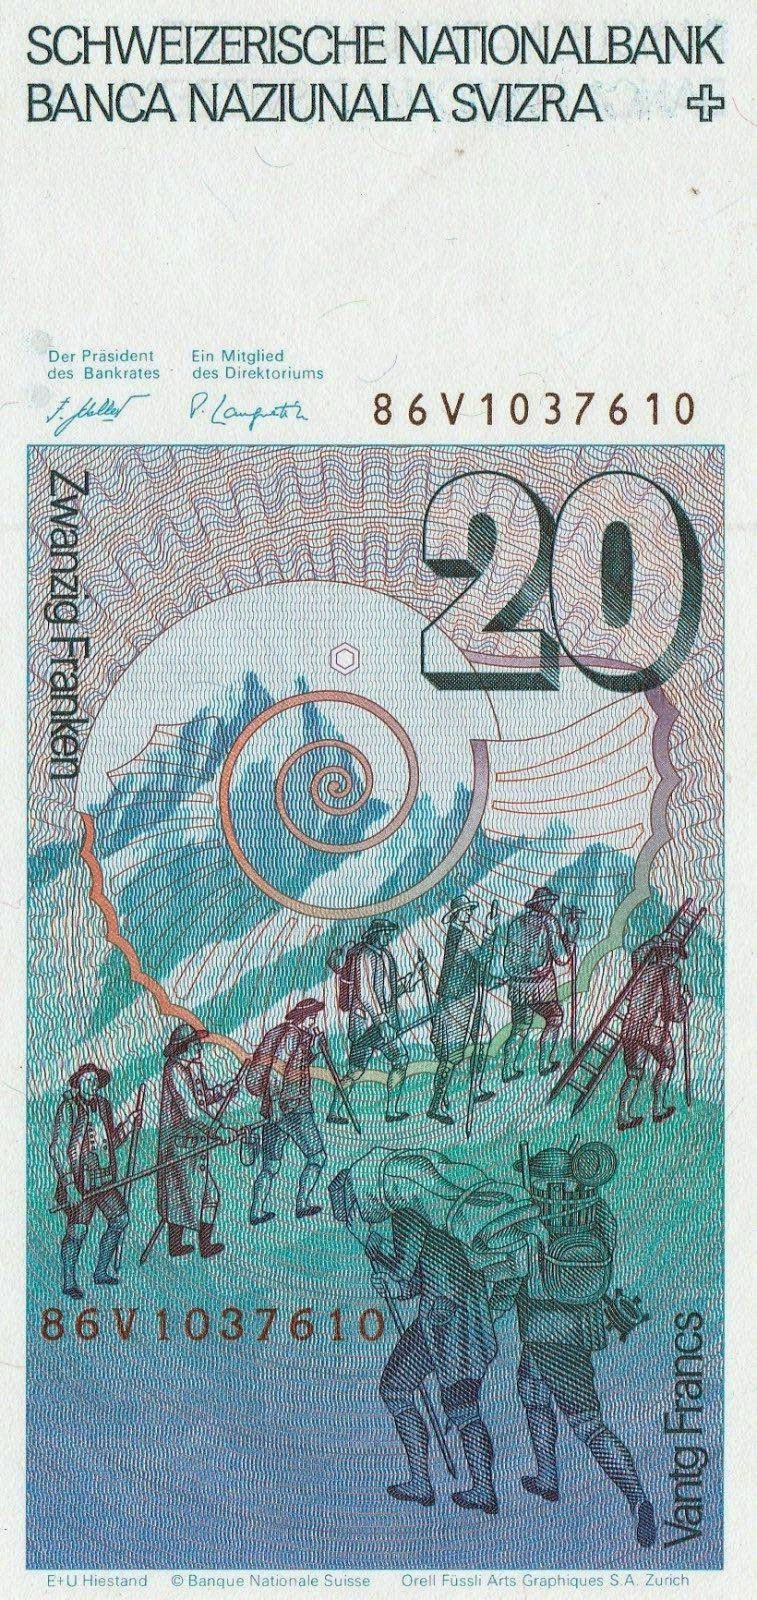 Banknotes of Switzerland 20 Swiss Franc note, Alpinists in the Swiss Alps